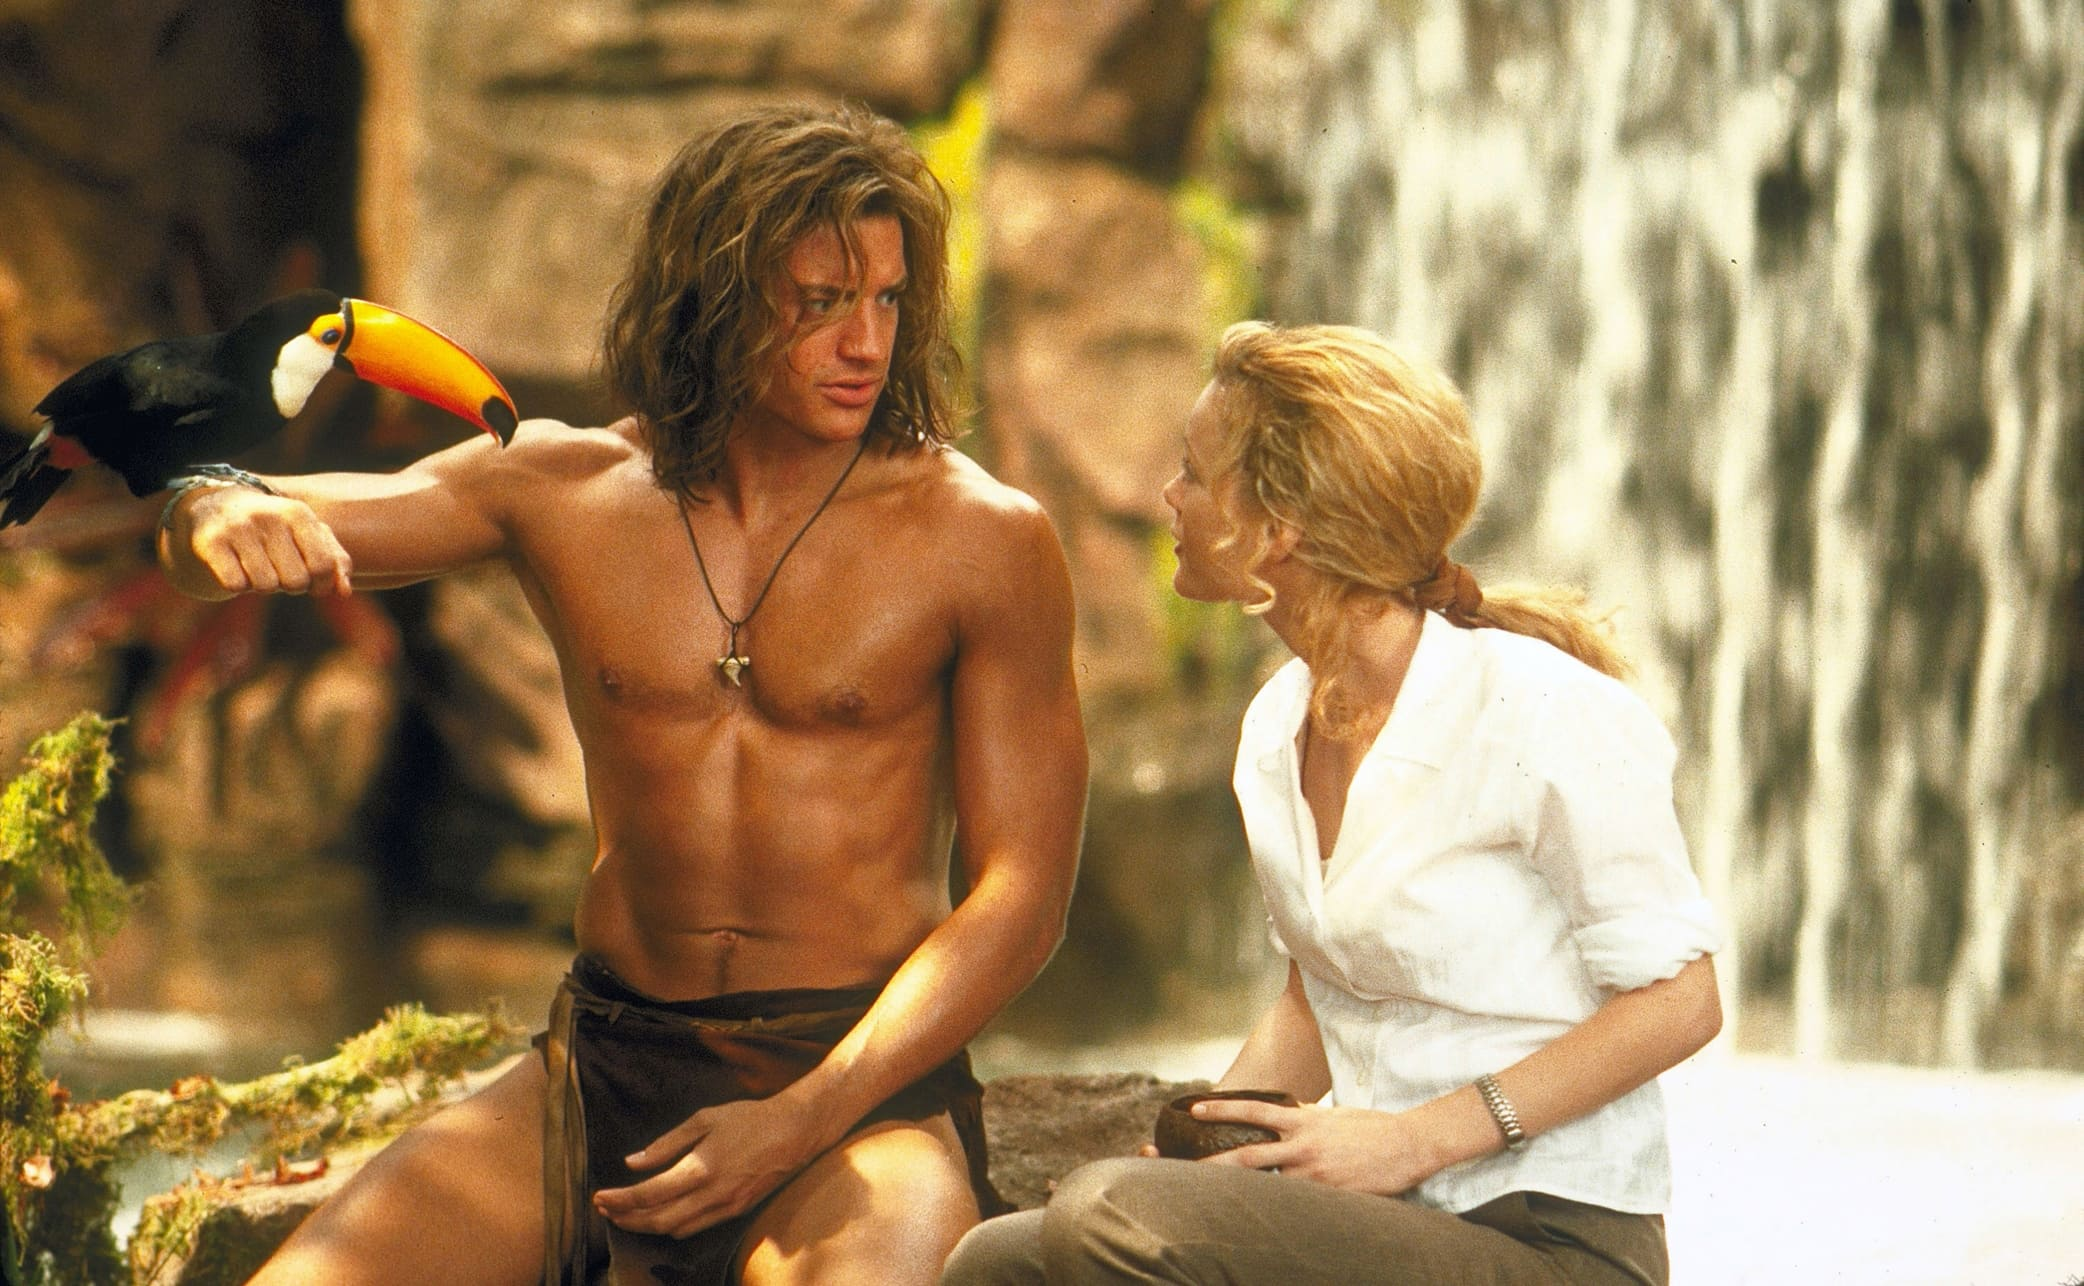 Brendan Fraser was 27 and Leslie Mann 25 at the premiere of George of the Jungle in 1997